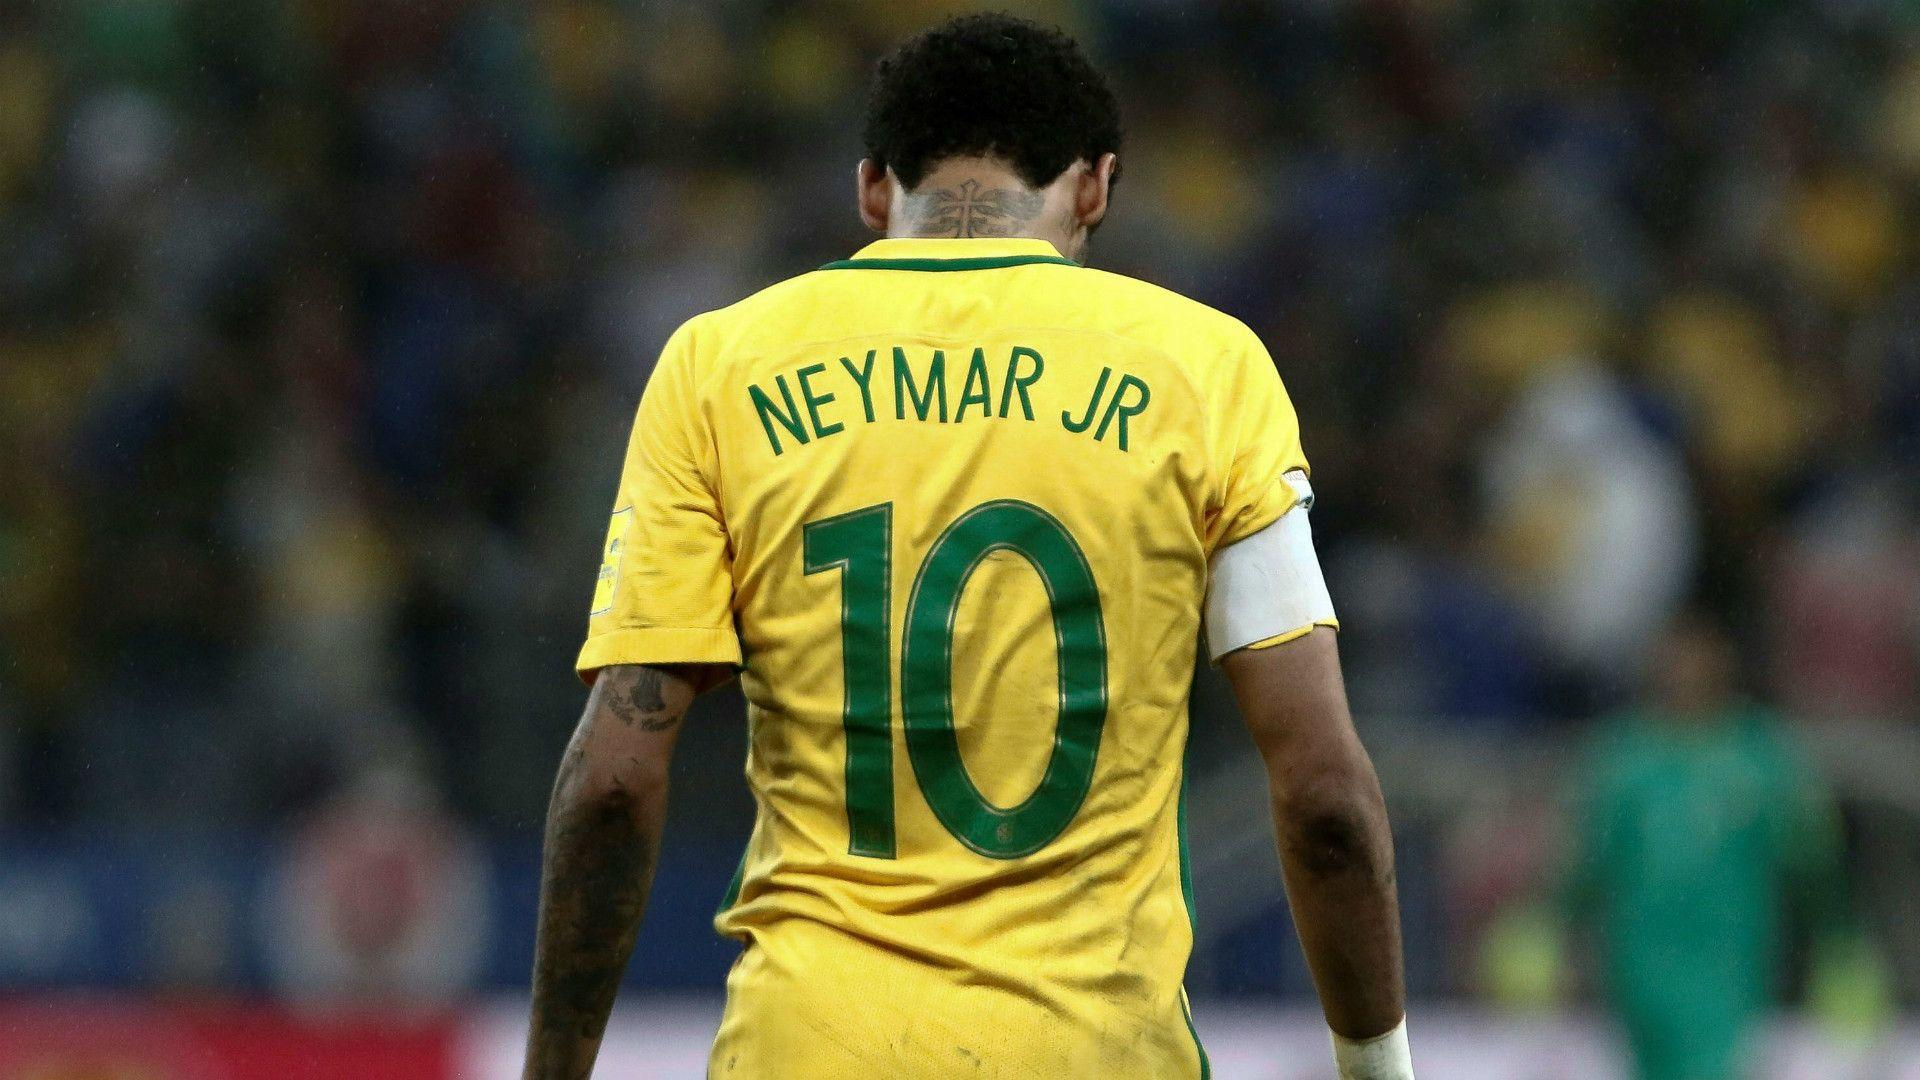 Neymar Jr 2018 Wallpaper (78+ pictures)